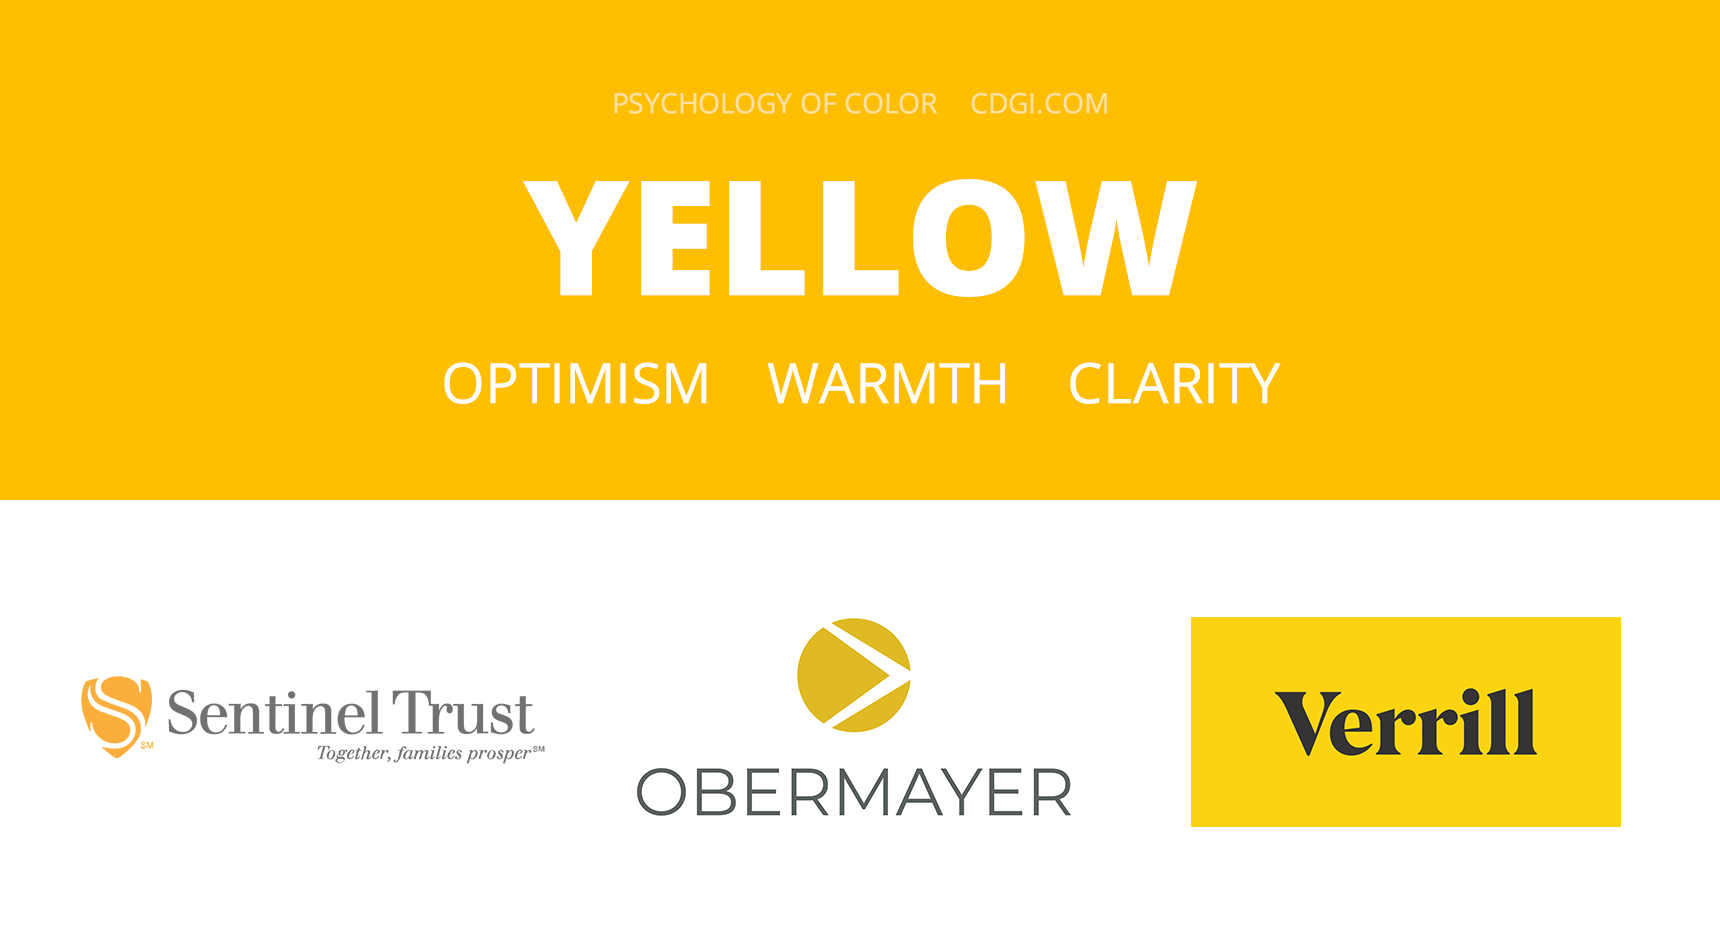 Yellow: Optimism, Warmth, Clarity